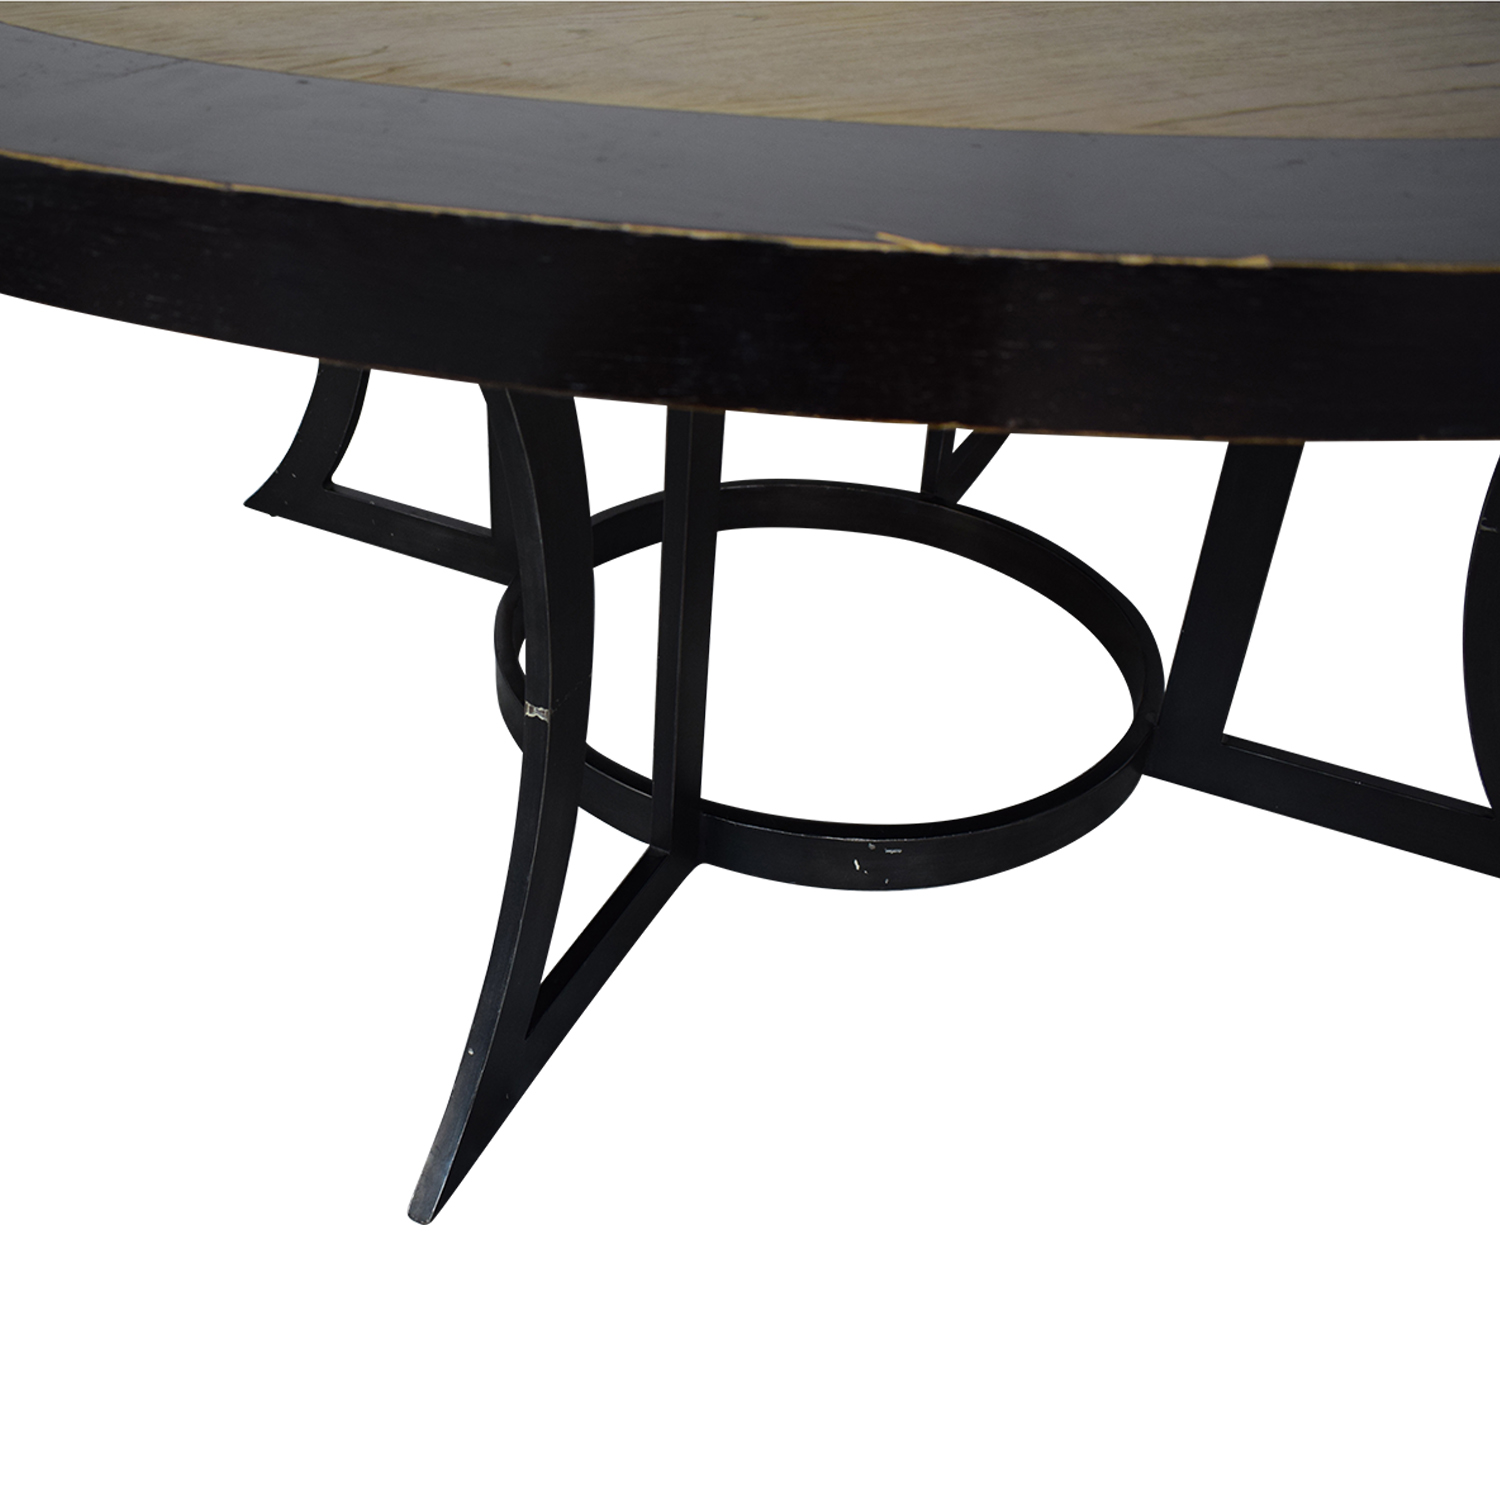 Thom Filicia Thom Filicia Dining Table for sale